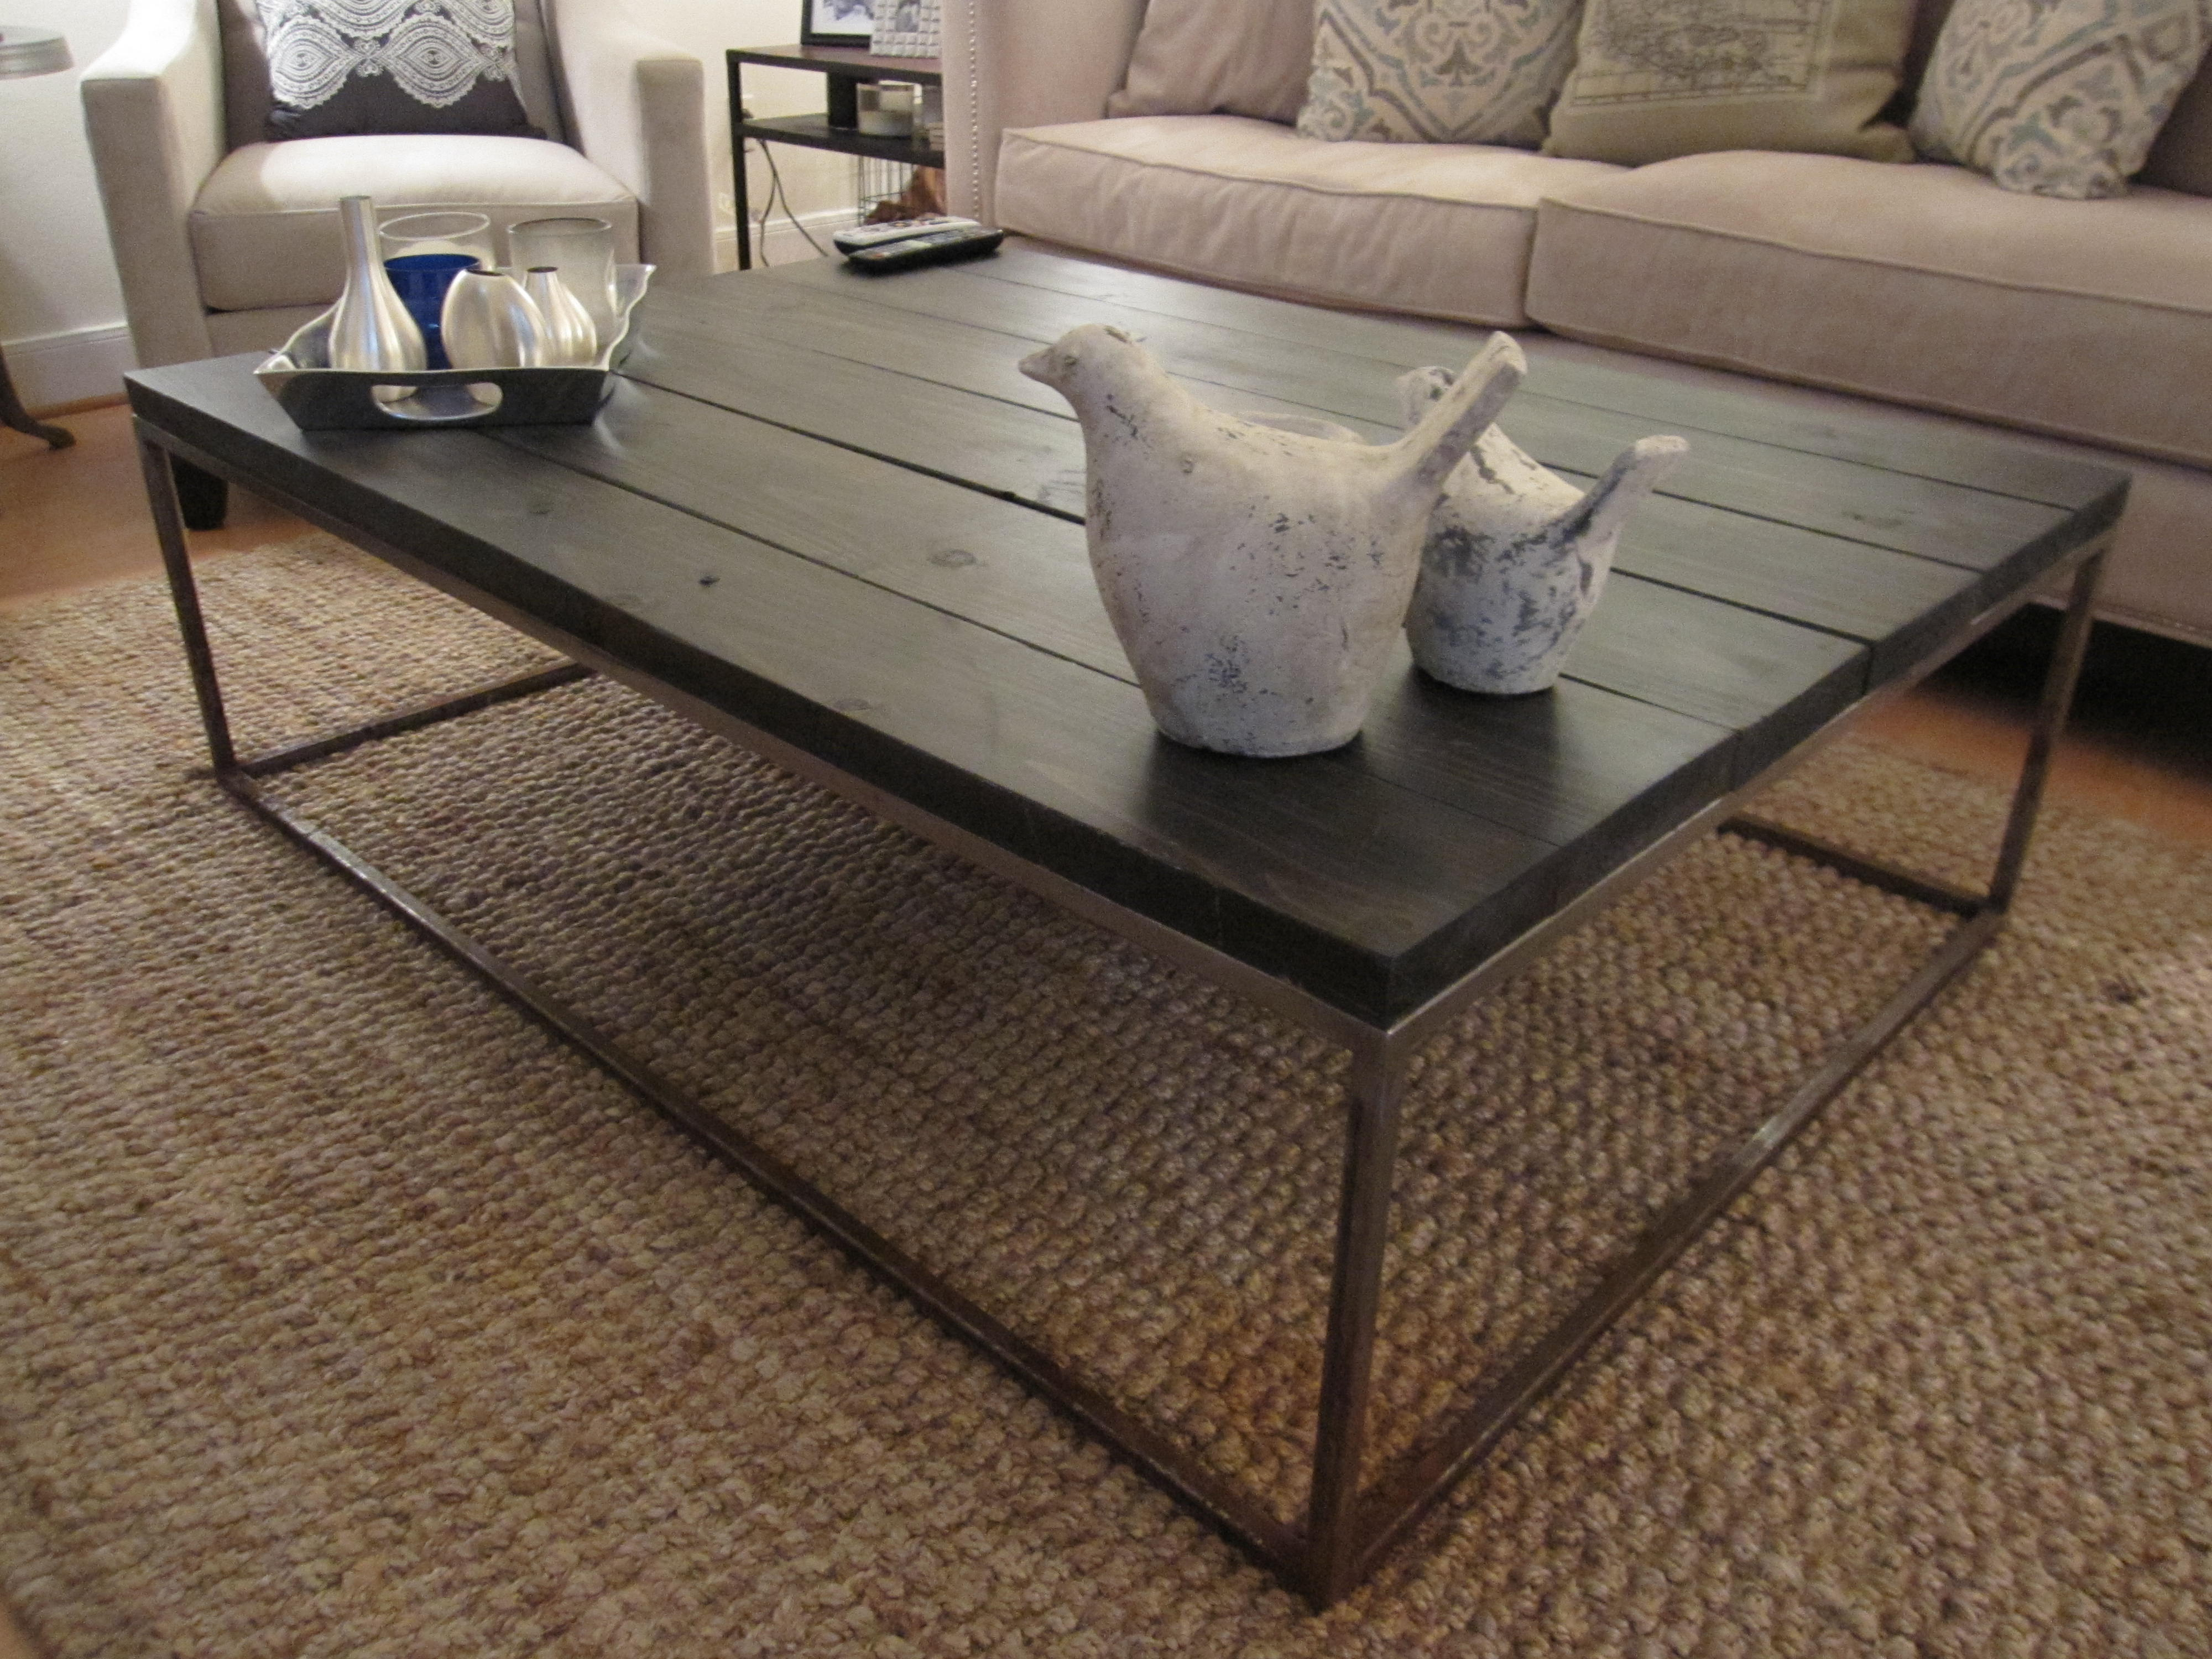 custom coffee table – ala restoration hardware (and many others Building a Coffee Table from Scratch